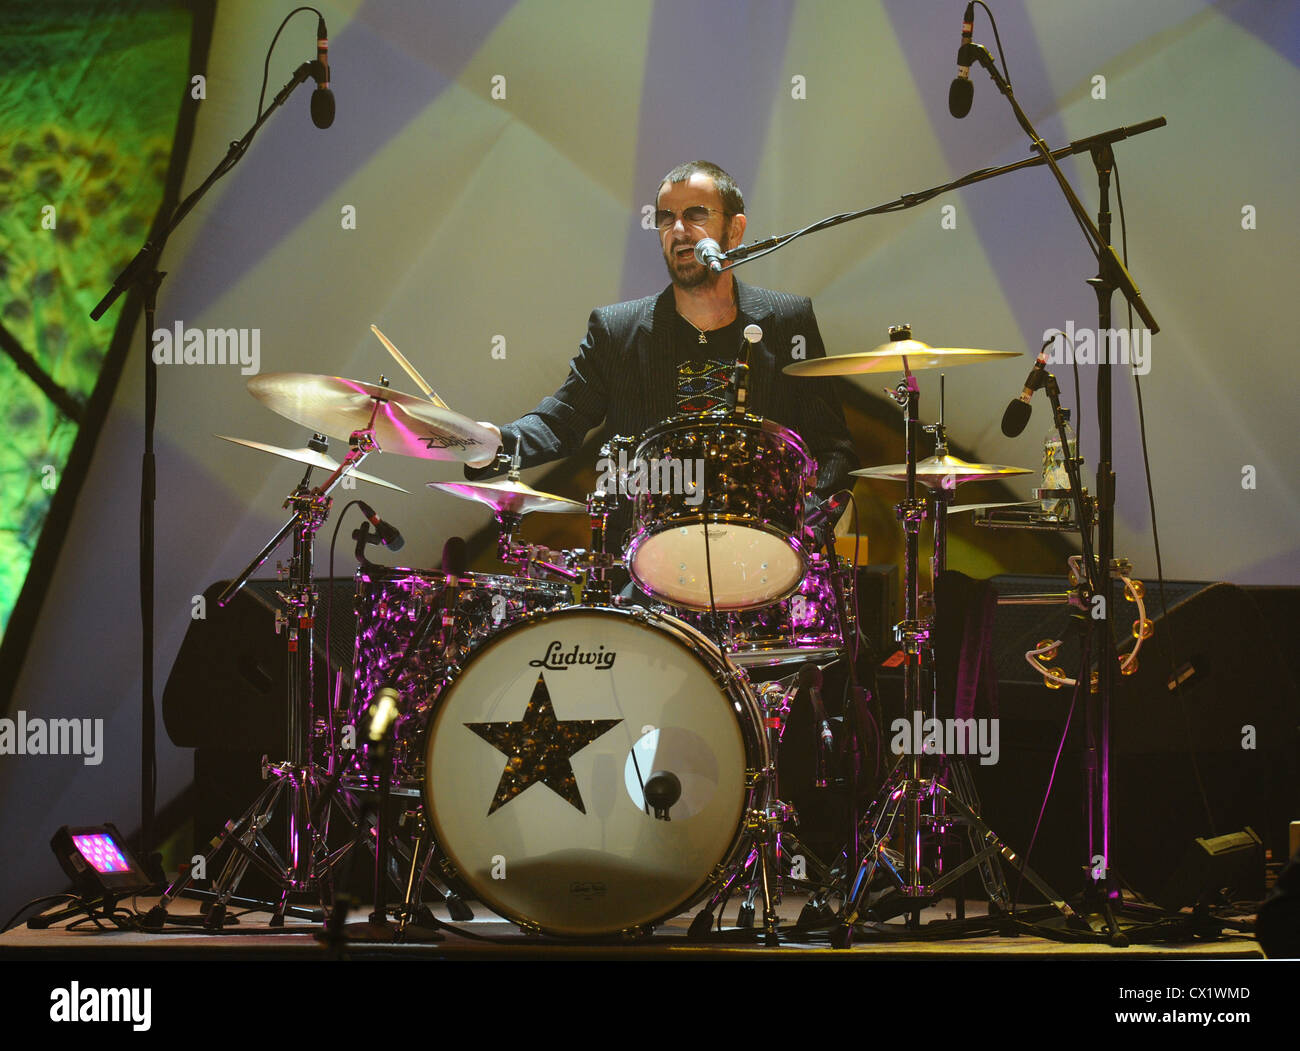 ITAR-TASS: MOSCOW, RUSSIA. JUNE 6, 2011. Former Beatles drummer Ringo Starr performs at Crocus City Hall during - Stock Image